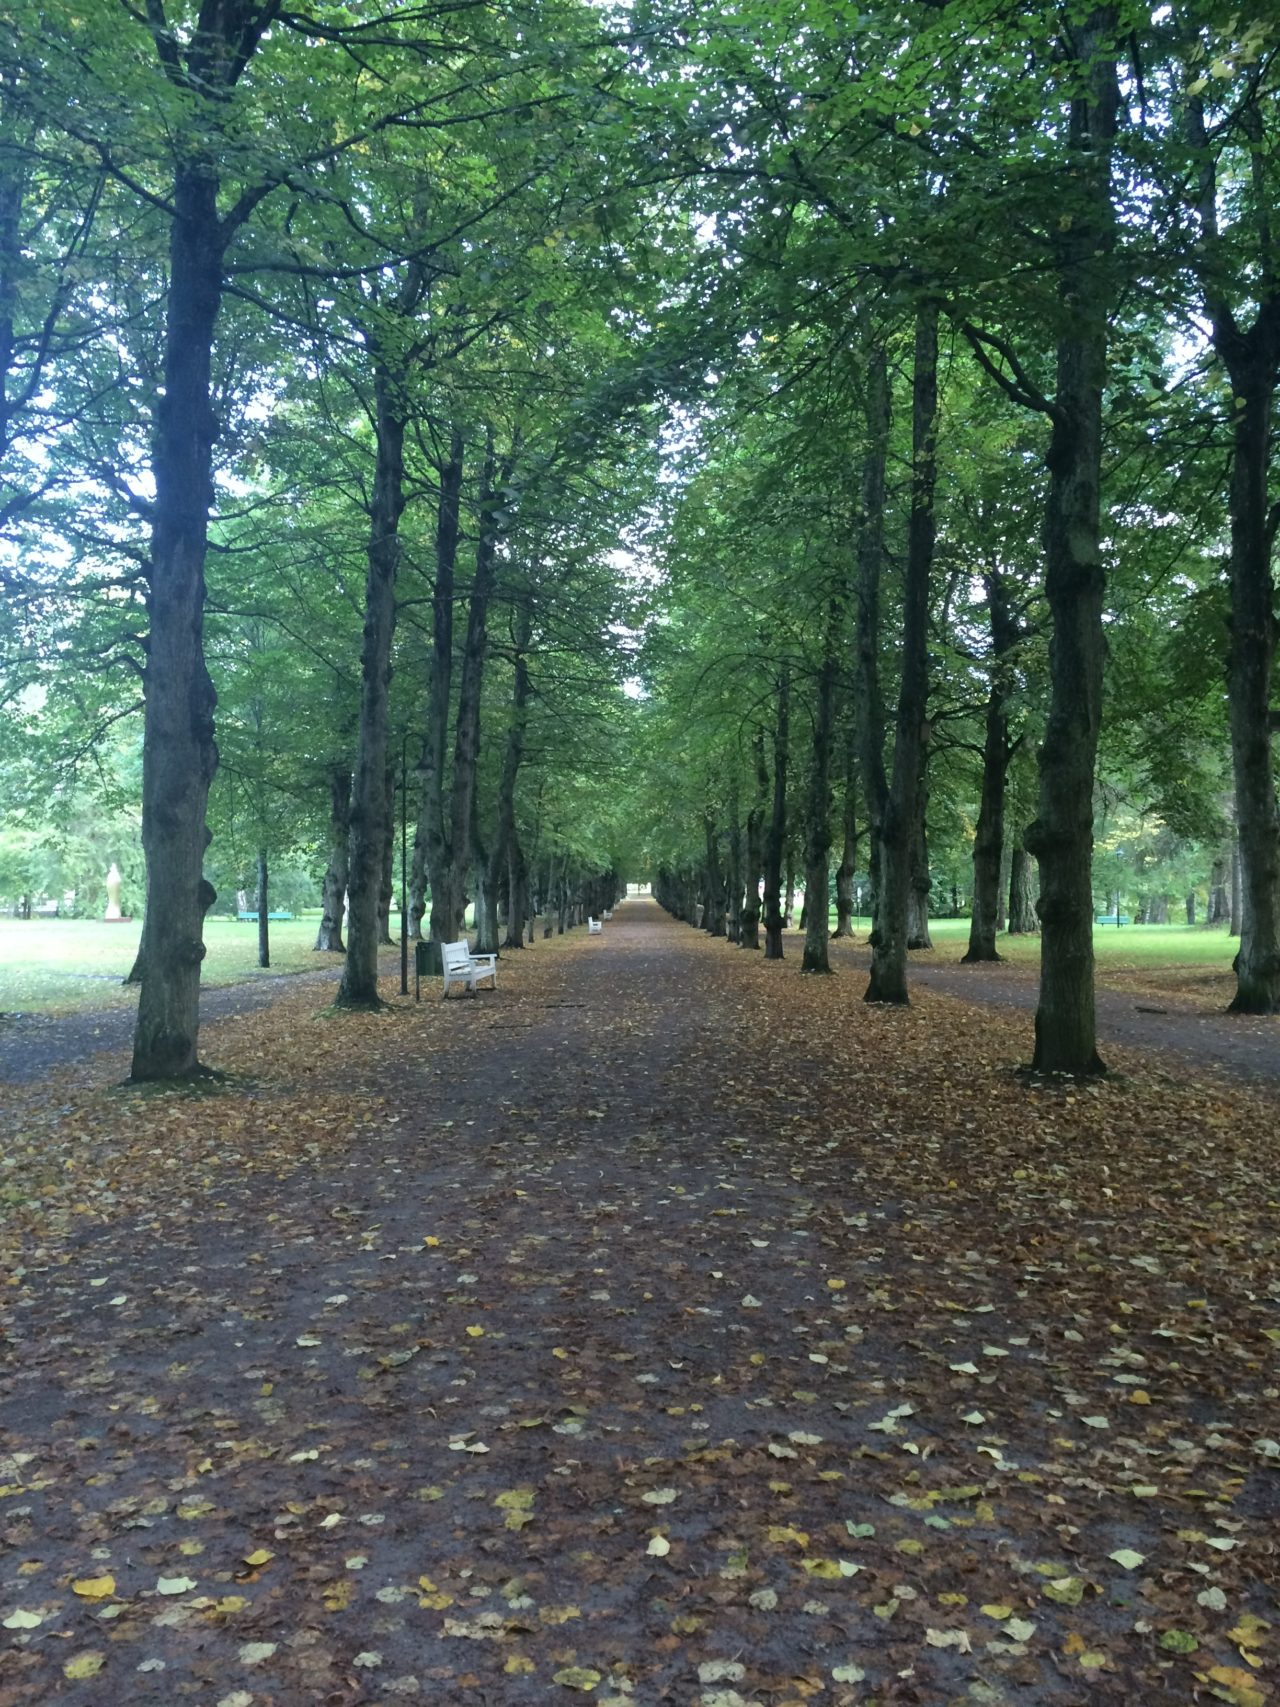 City Park With Long Avenue With Tall Trees On The Sides With Yellow Leaves On The Gravel